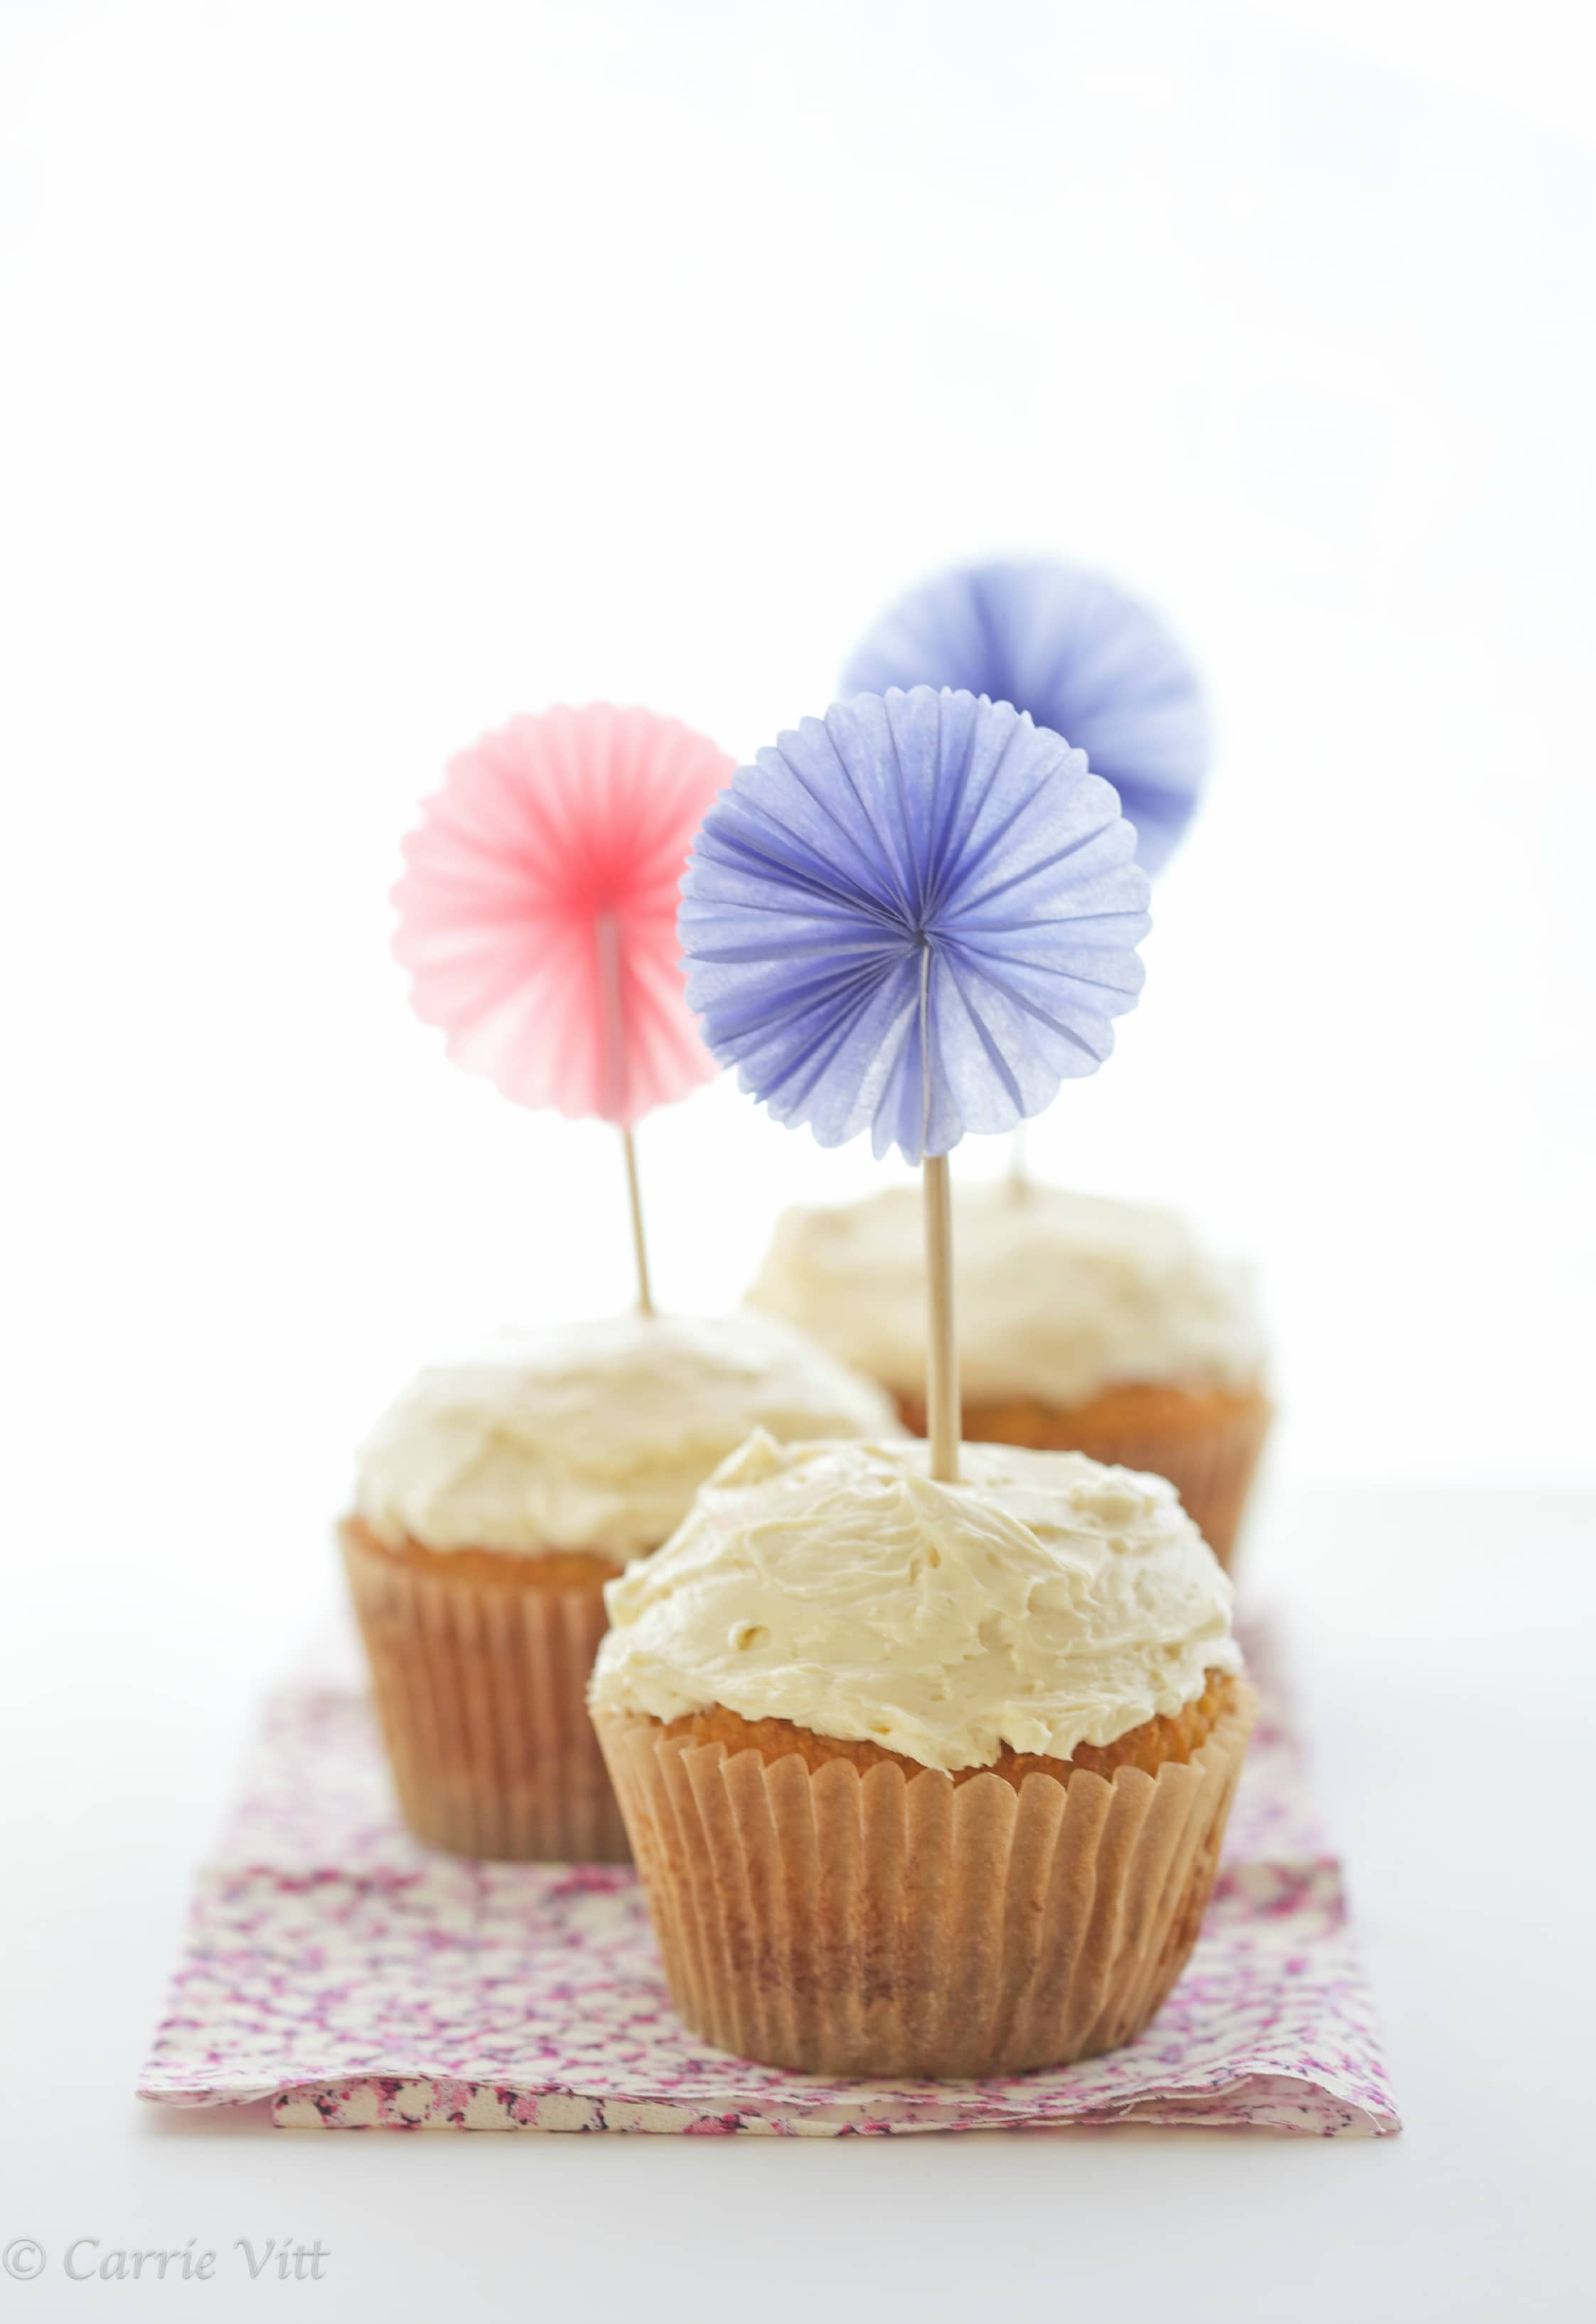 Healthy Bakeware and Grain-Free Cupcakes with Buttercream Frosting ...